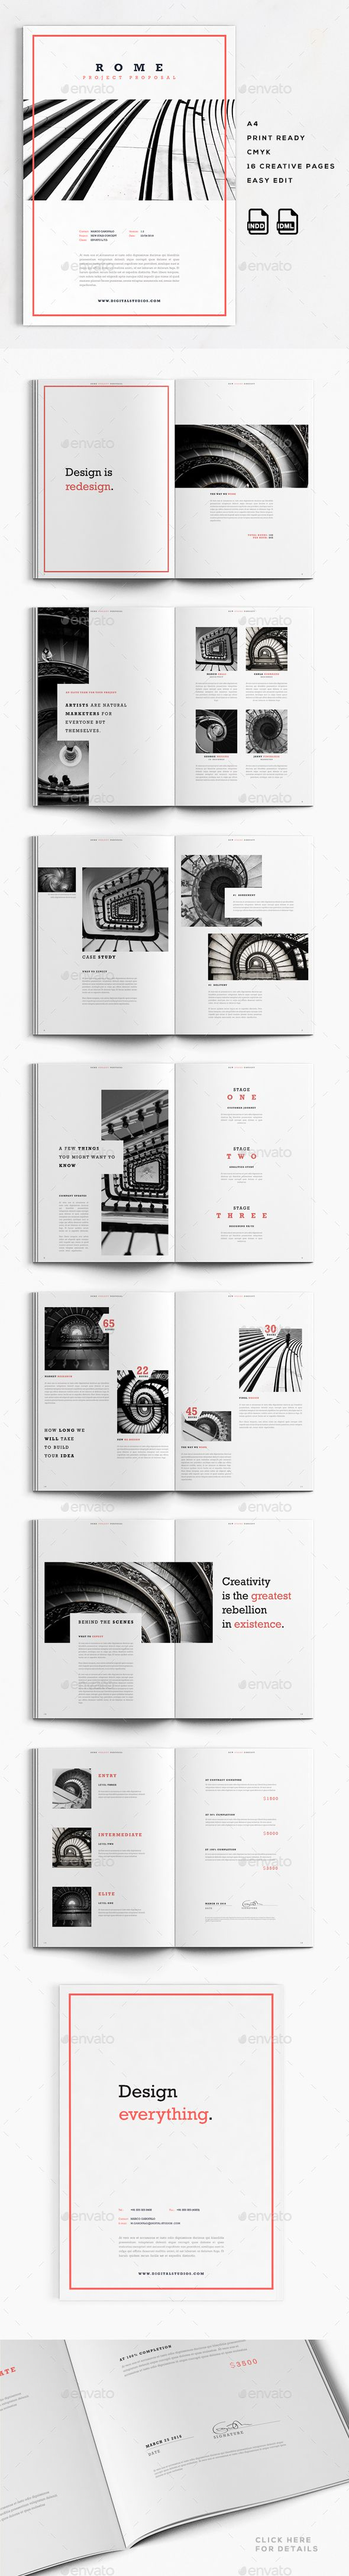 Rome A4 Creative Business Proposal Template